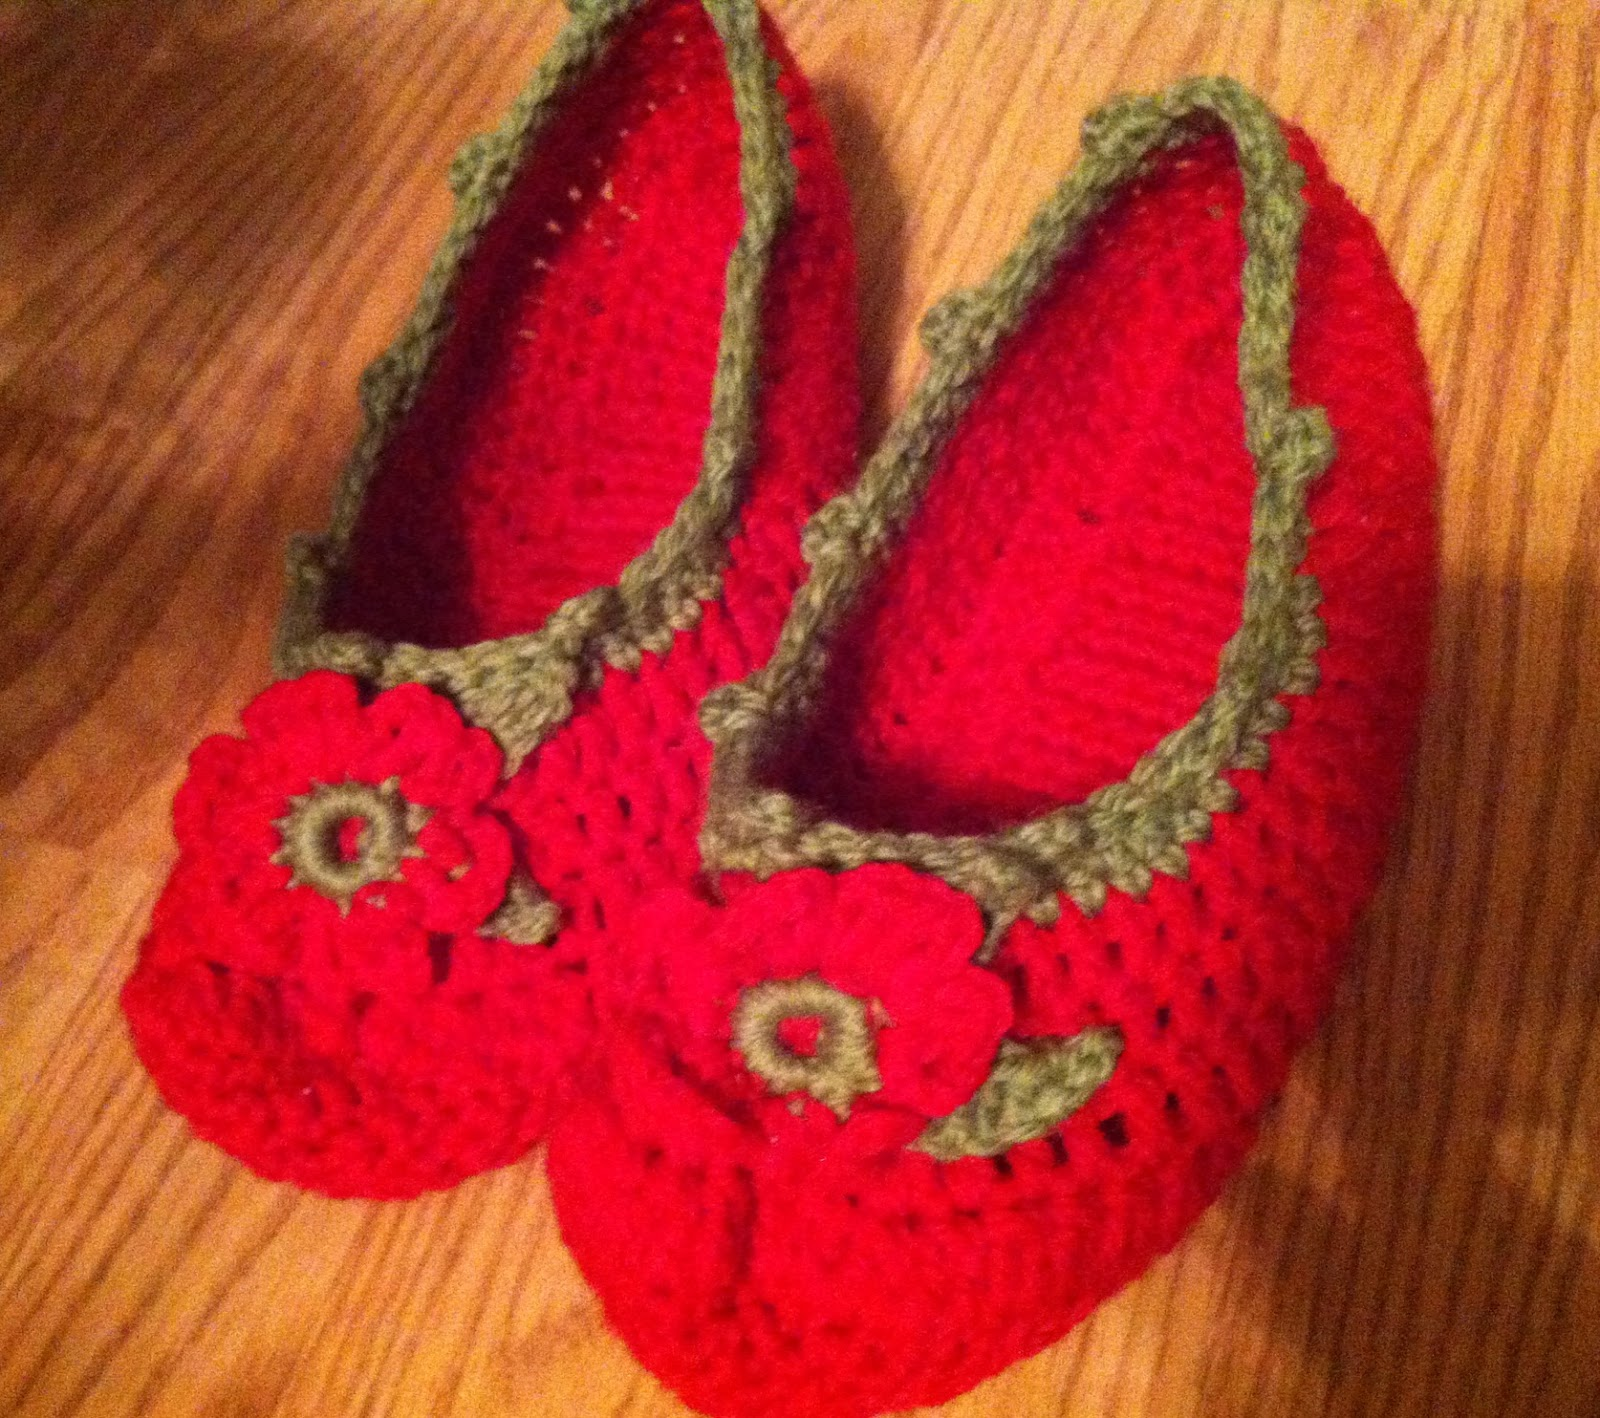 Nifty Thrifty Bits: Frugal Handmade Gift Idea - Crochet Slippers and ...